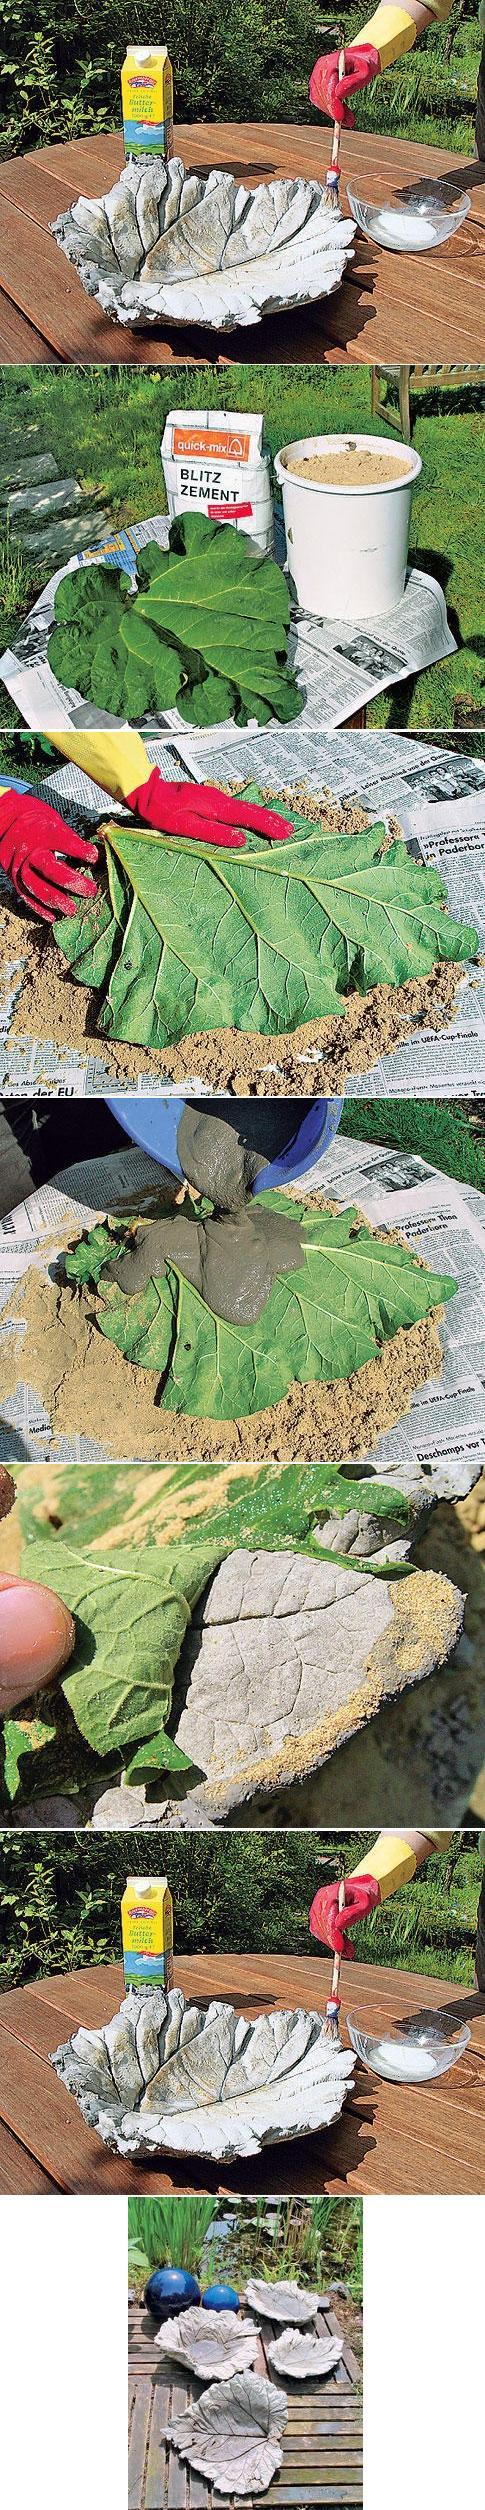 DIY Concrete Leaf Bird Bath DIY Projects | UsefulDIY.com